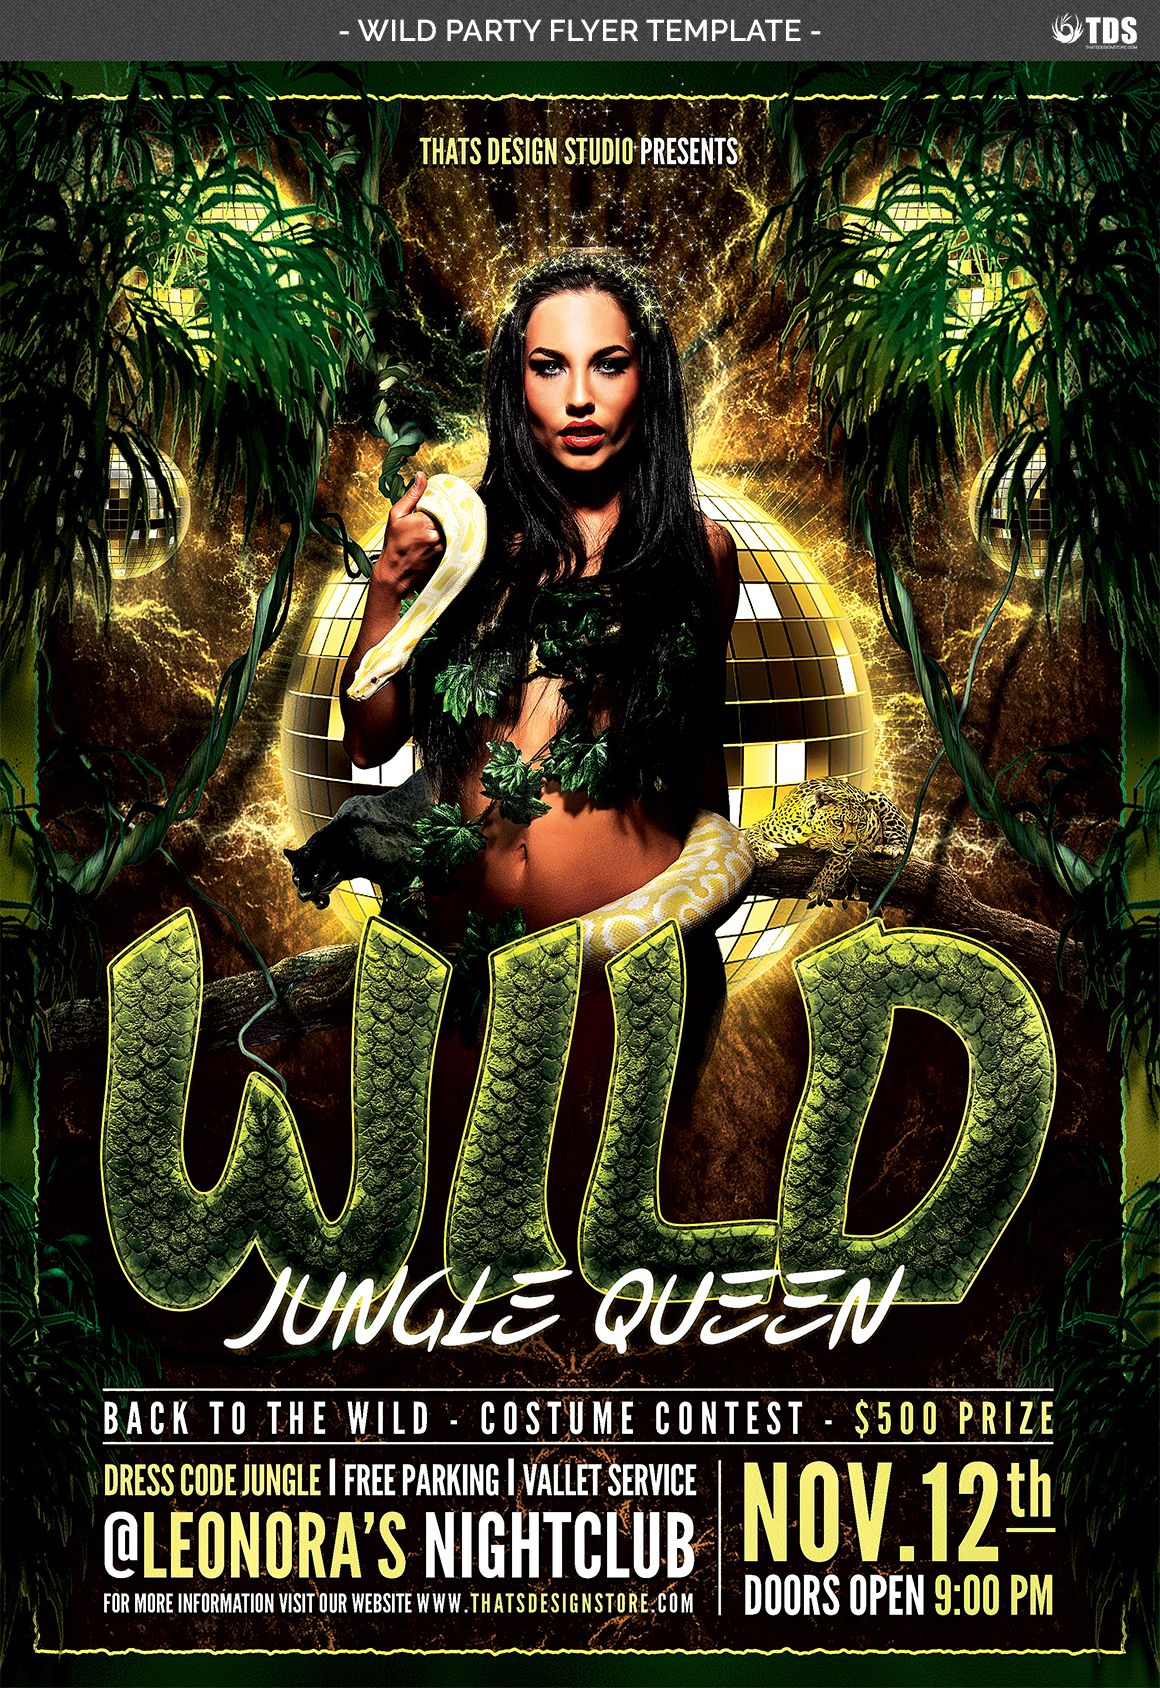 Wild Party Flyer Template example image 4